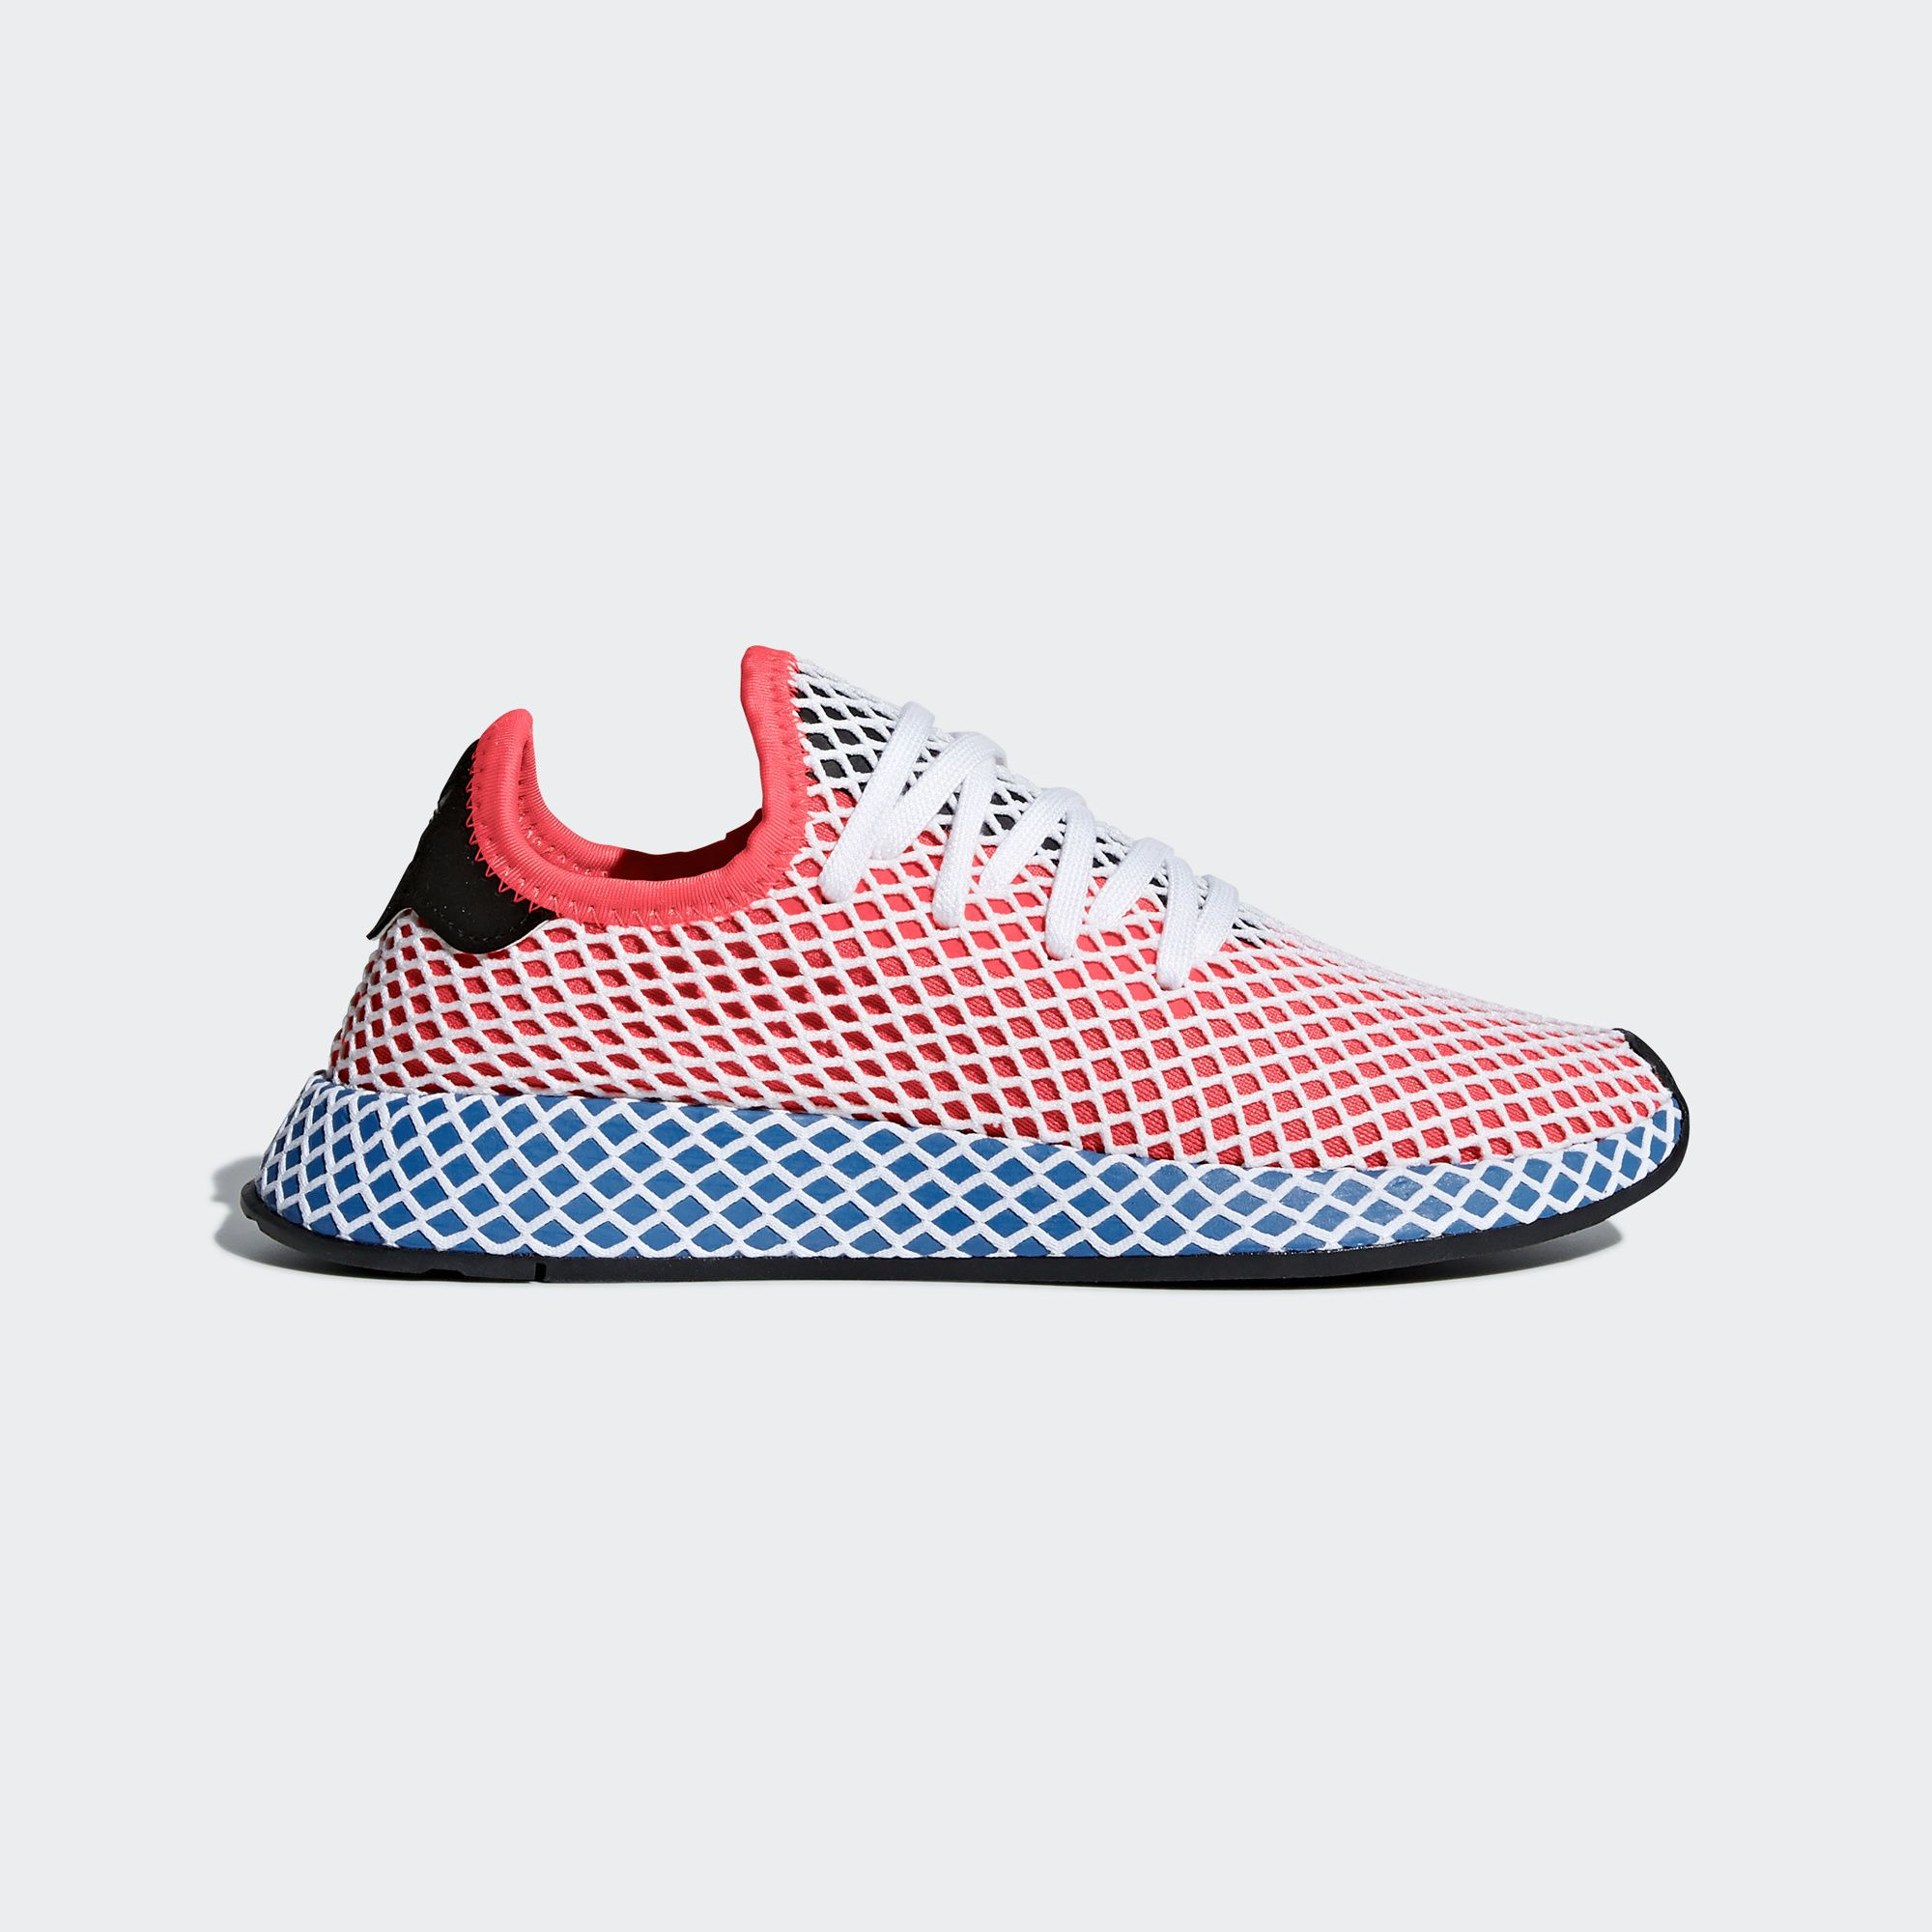 official photos 961b8 554e2 Shop the Deerupt Runner Shoes - Red at adidas.comus! See all the styles  and colors of Deerupt Runner Shoes - Red at the official adidas online shop.